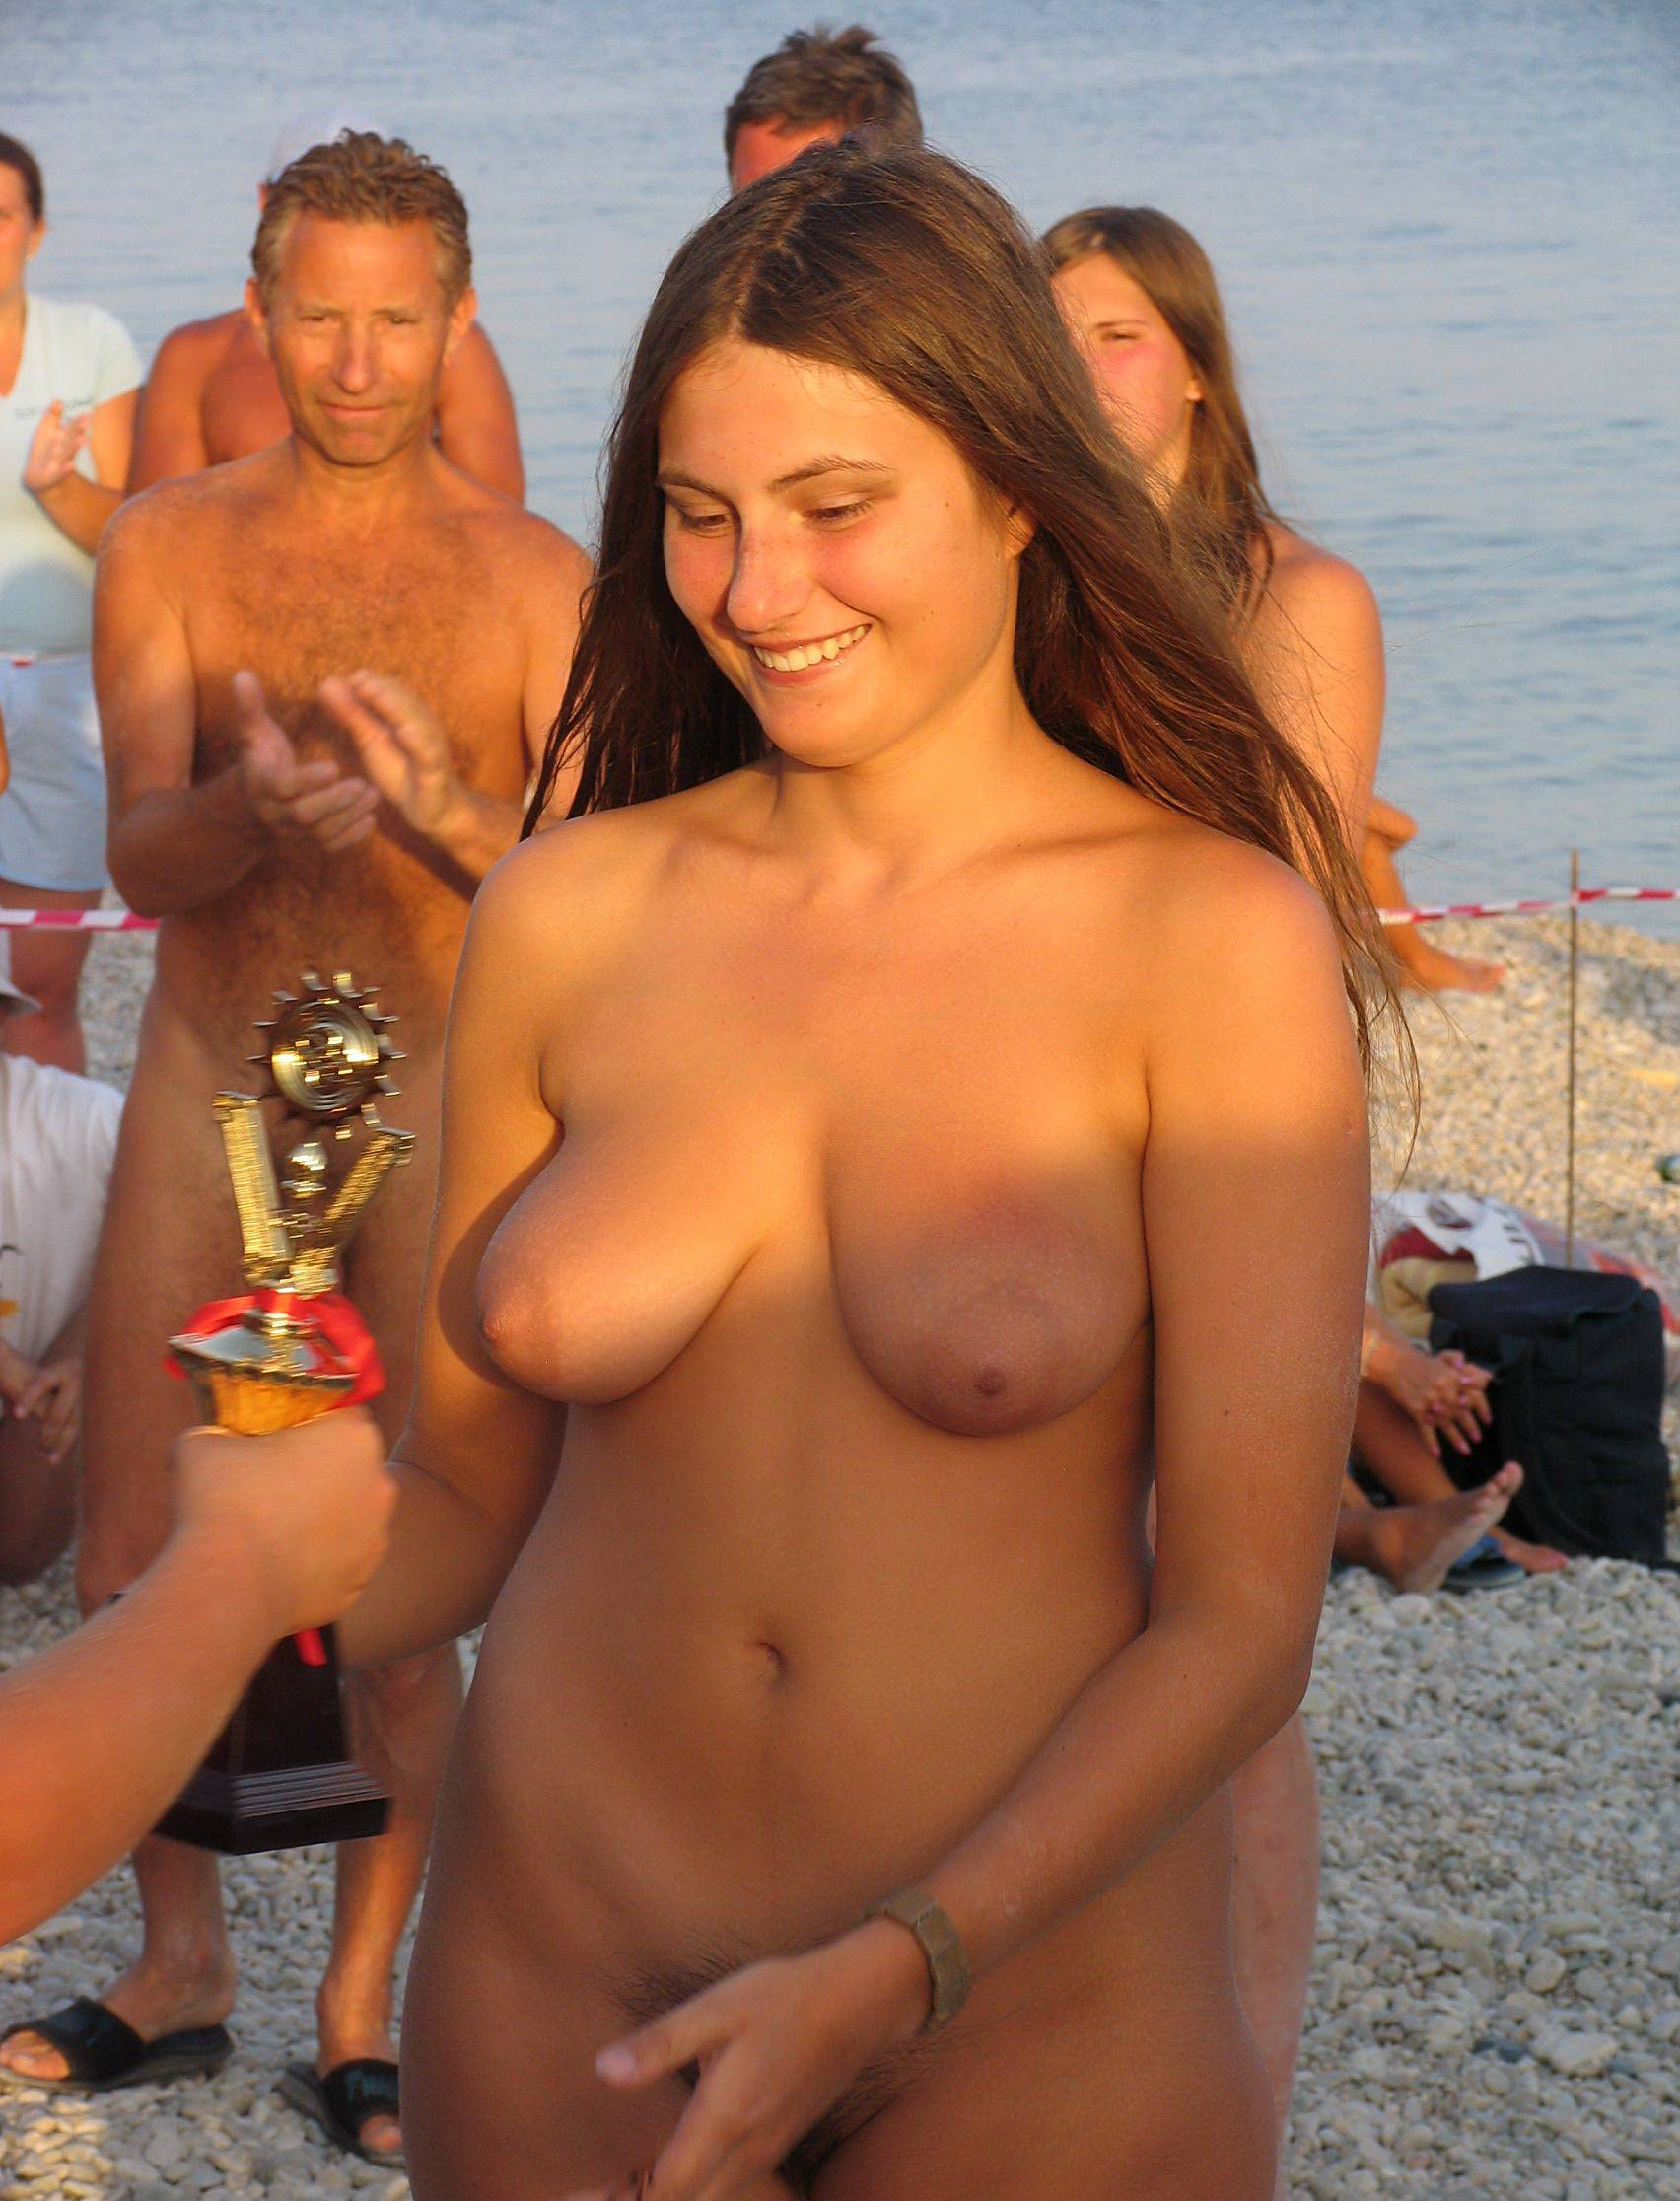 Tanned Naturist Relaxation - 2